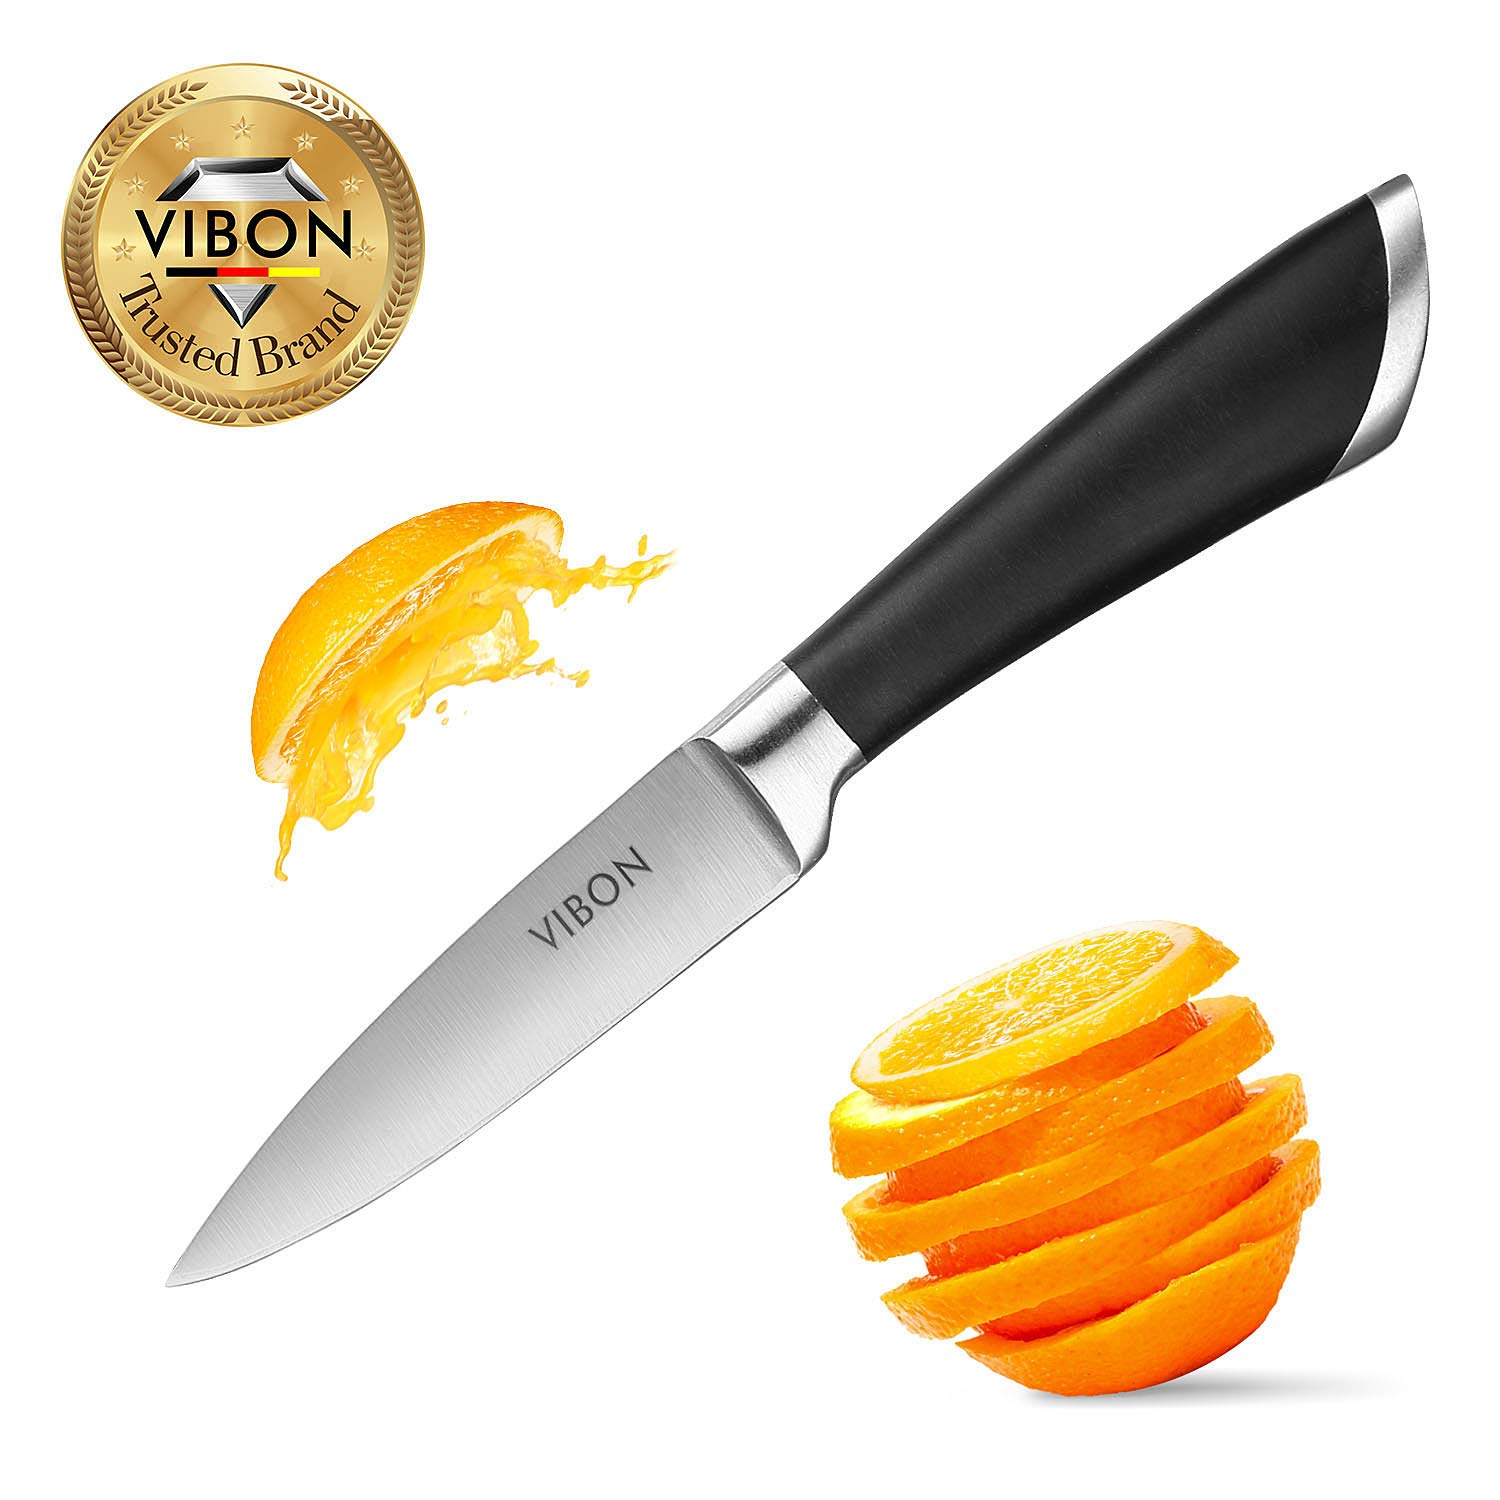 VIBON 3.5 Inches Paring Knife, Fruit Knife Ktchen Vegetable Cutlery